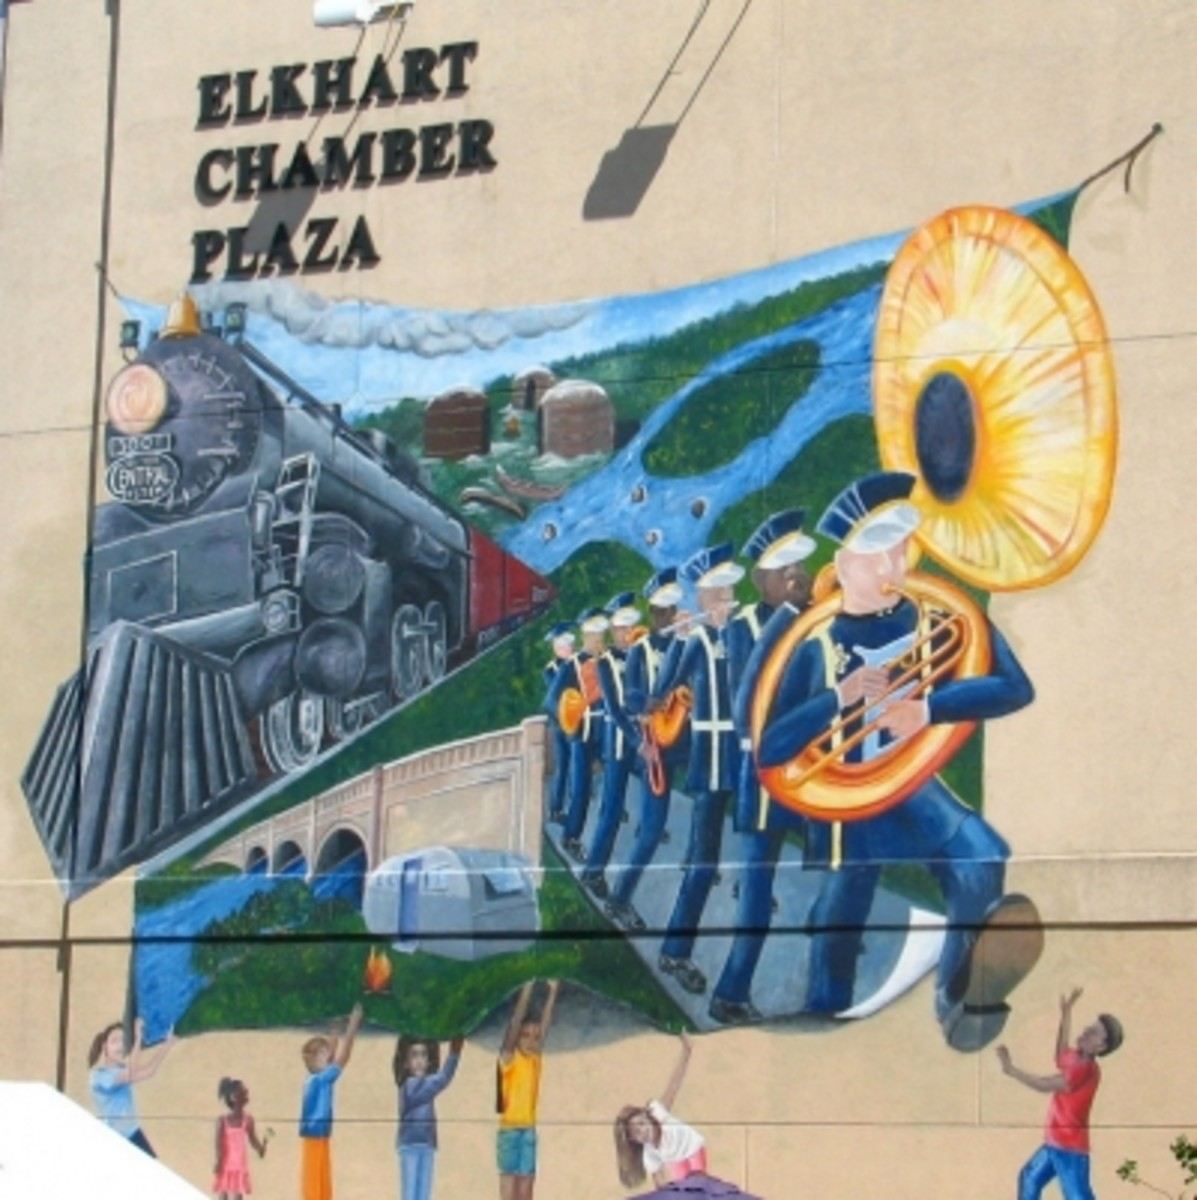 Elkhart Mural Features City History